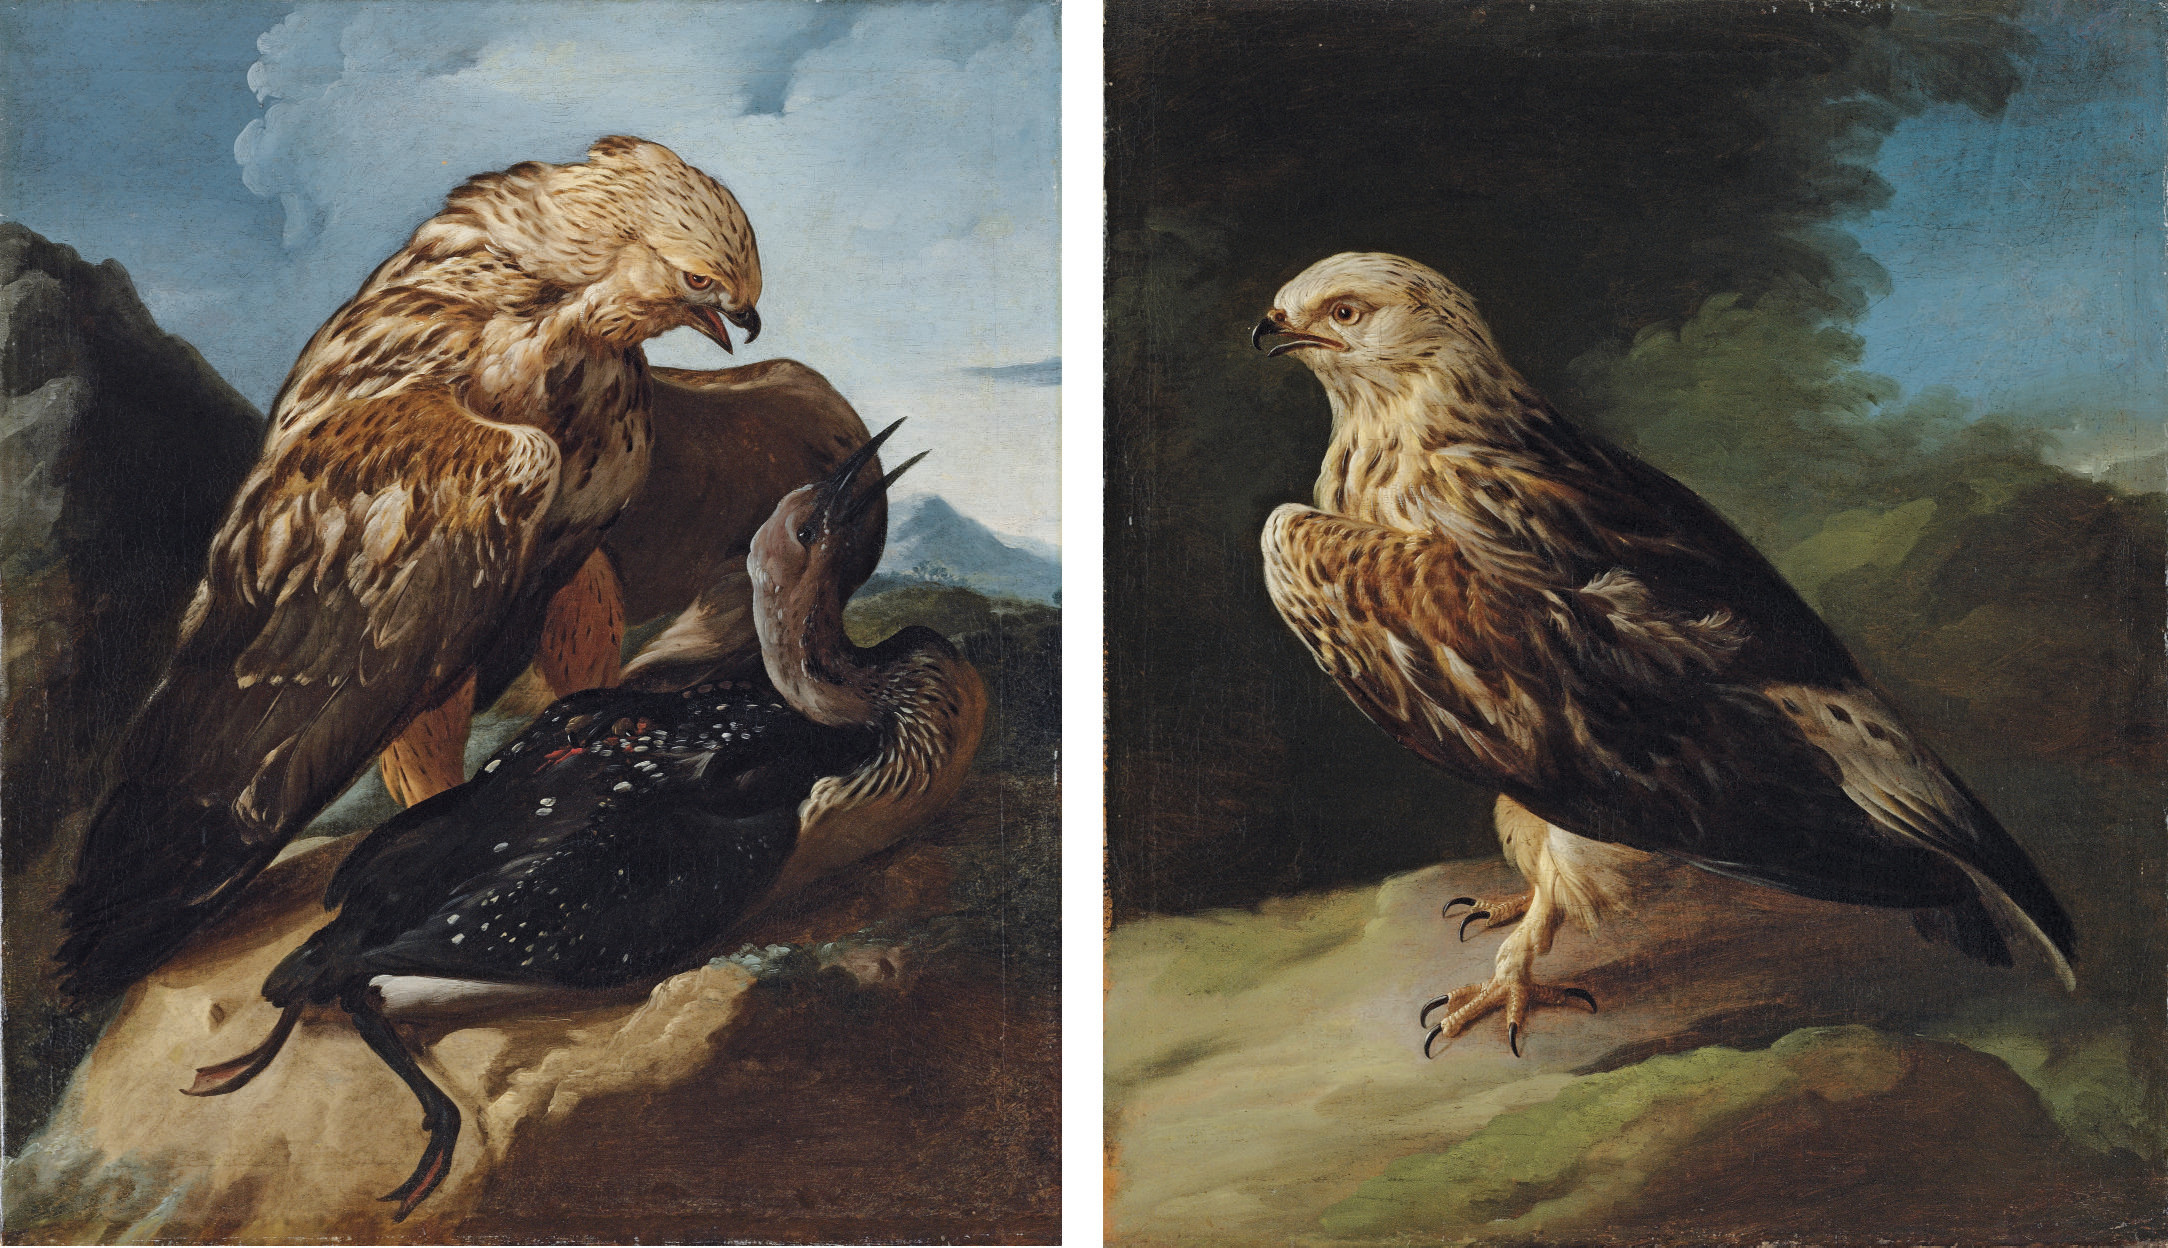 A buzzard attacking a cormorant in a landscape; and A buzzard in a landscape